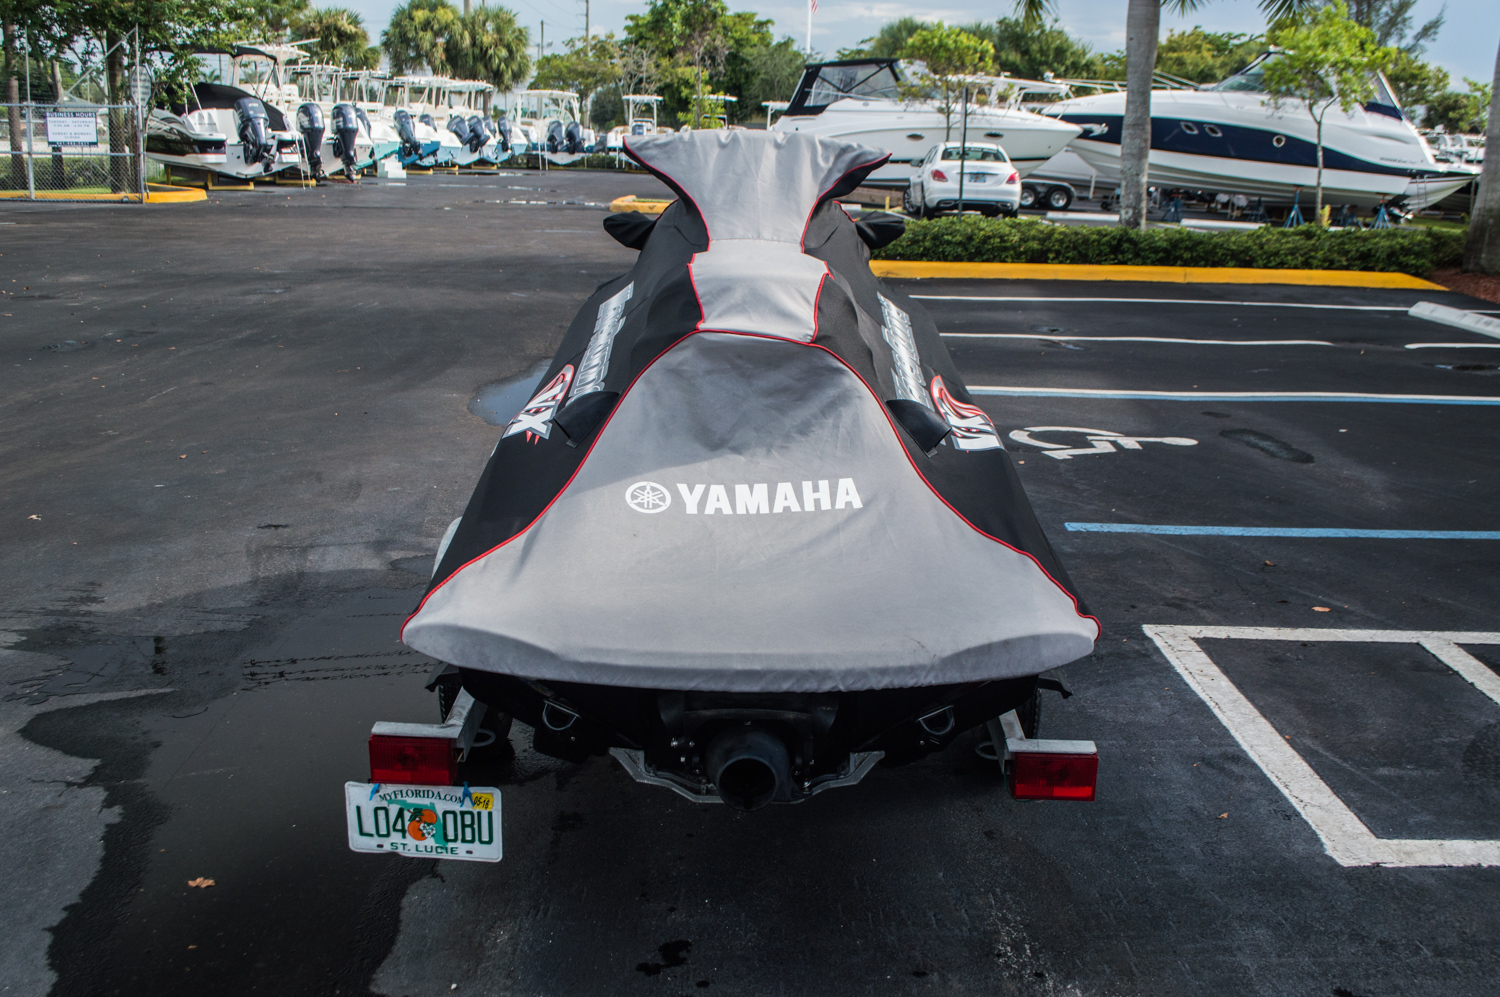 Thumbnail 16 for Used 2007 Yamaha VX Cruiser boat for sale in West Palm Beach, FL